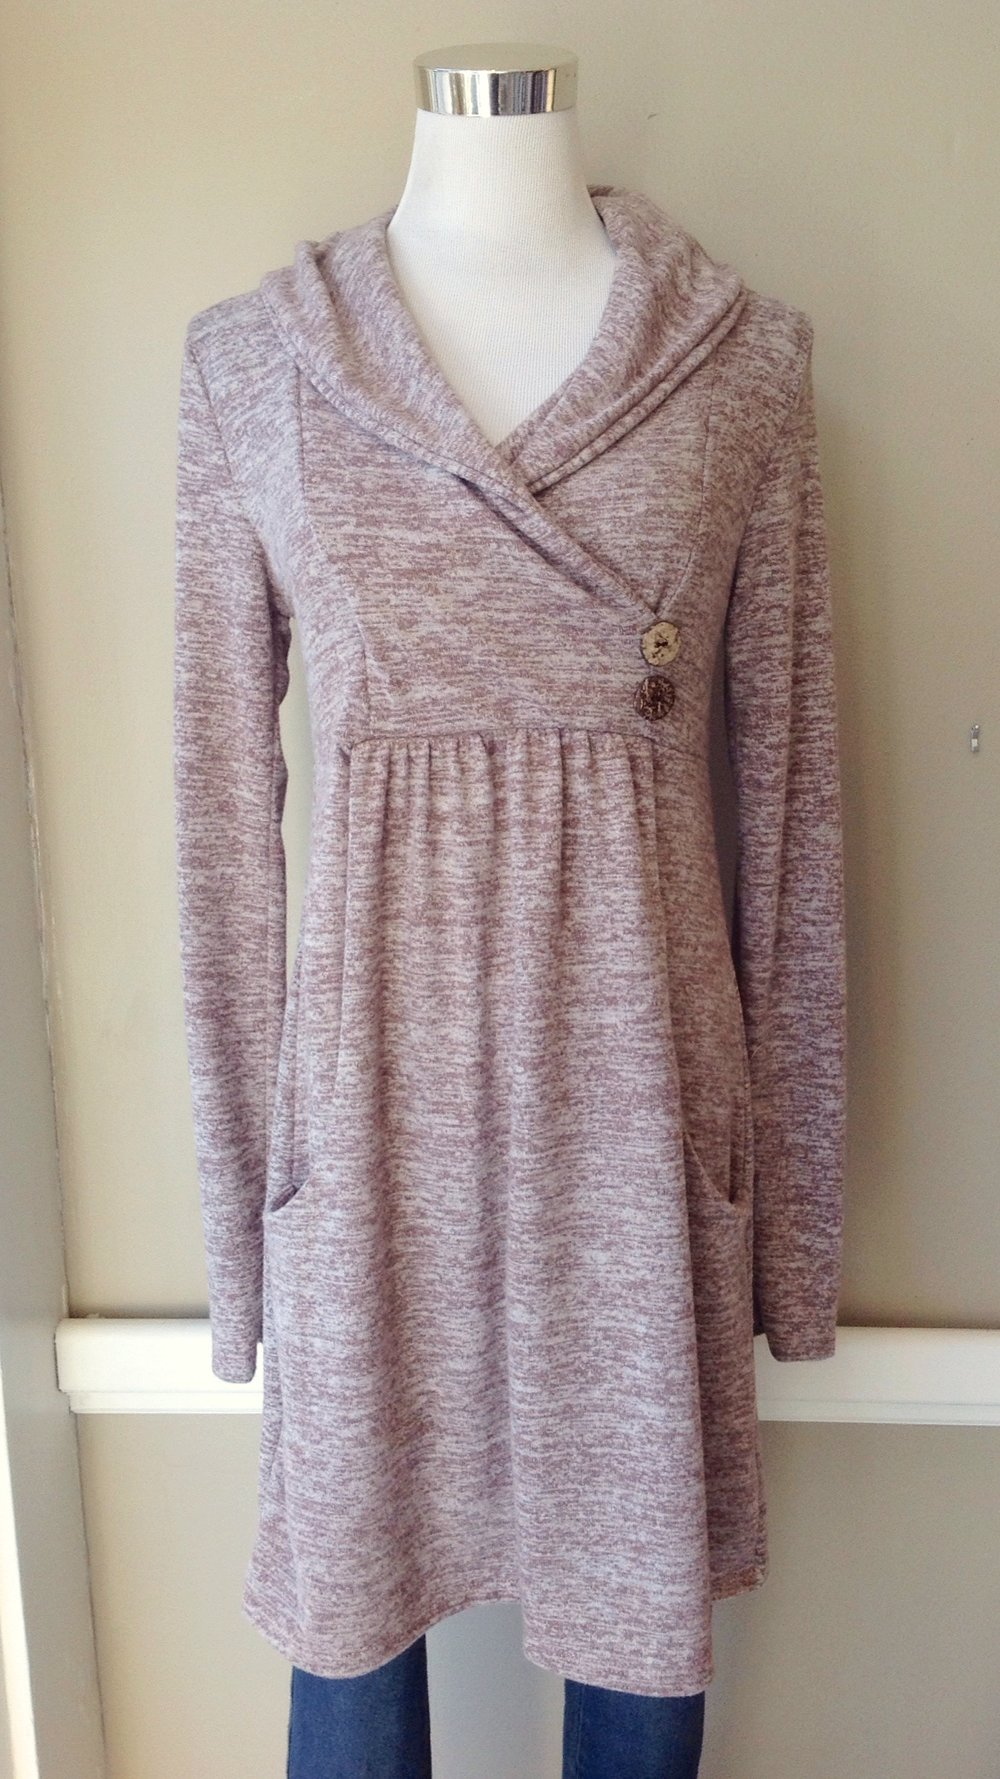 Heathered knit tunic top with gathered empire waist, shawl collar and side pockets, $38